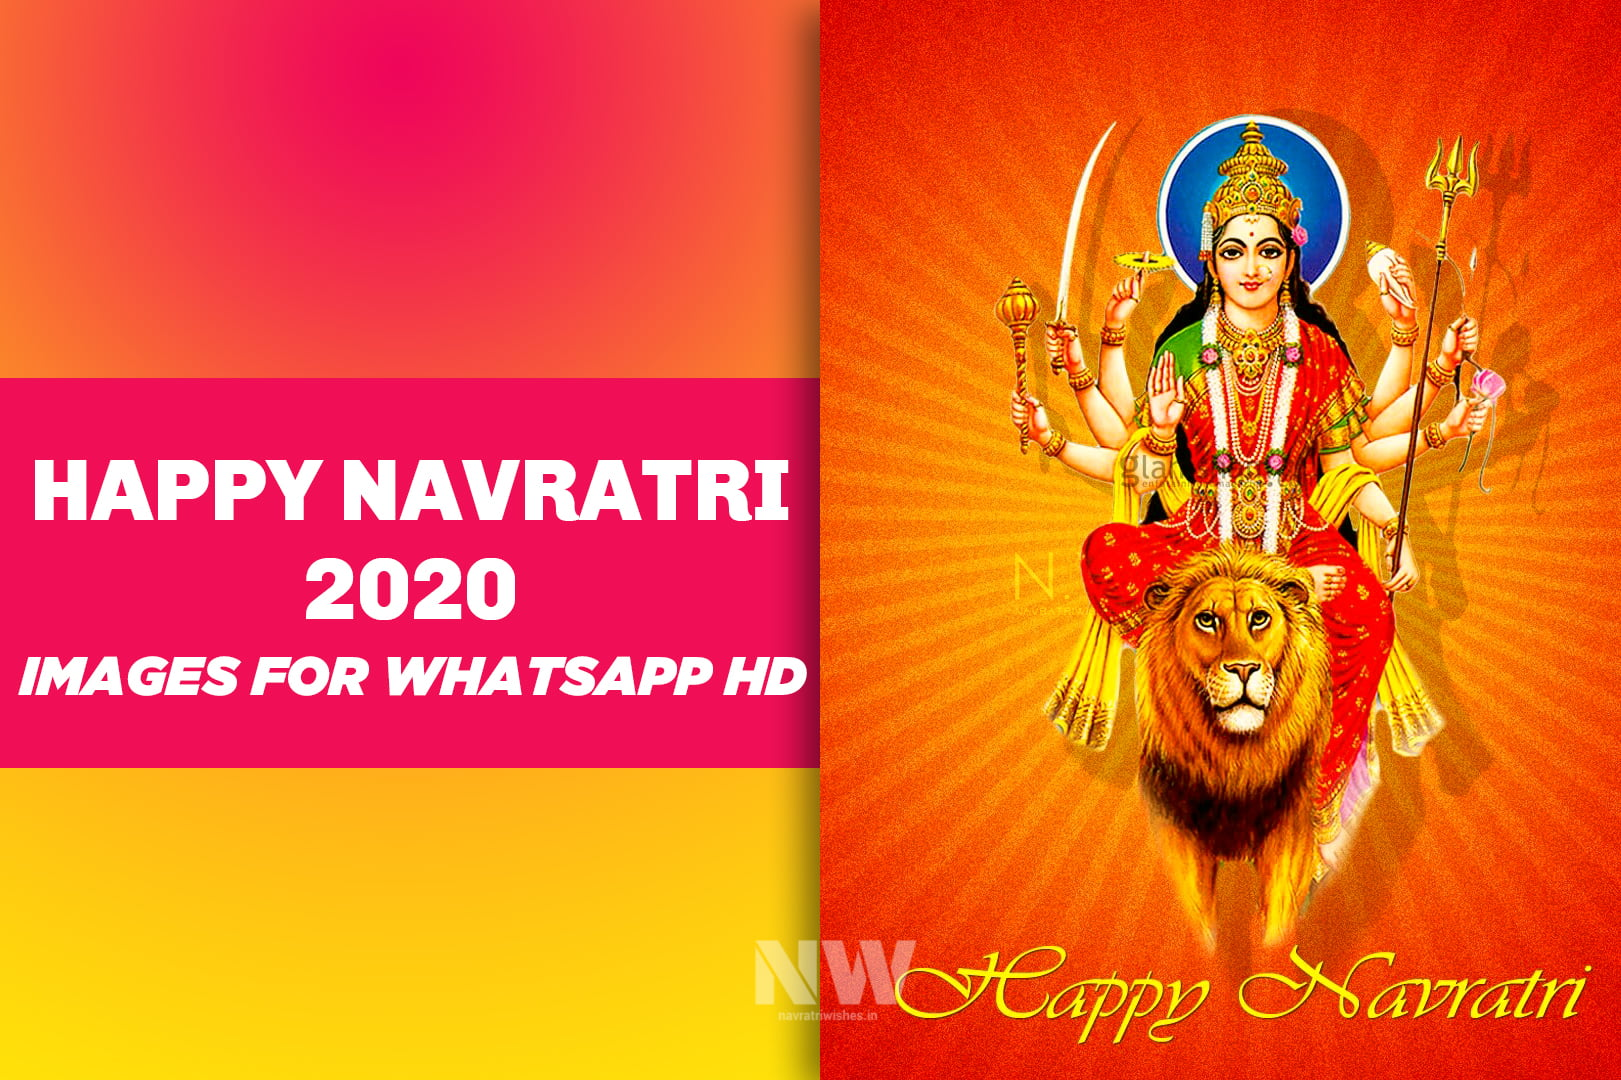 happy-navratri-2020-images-for-whatsapp-hd